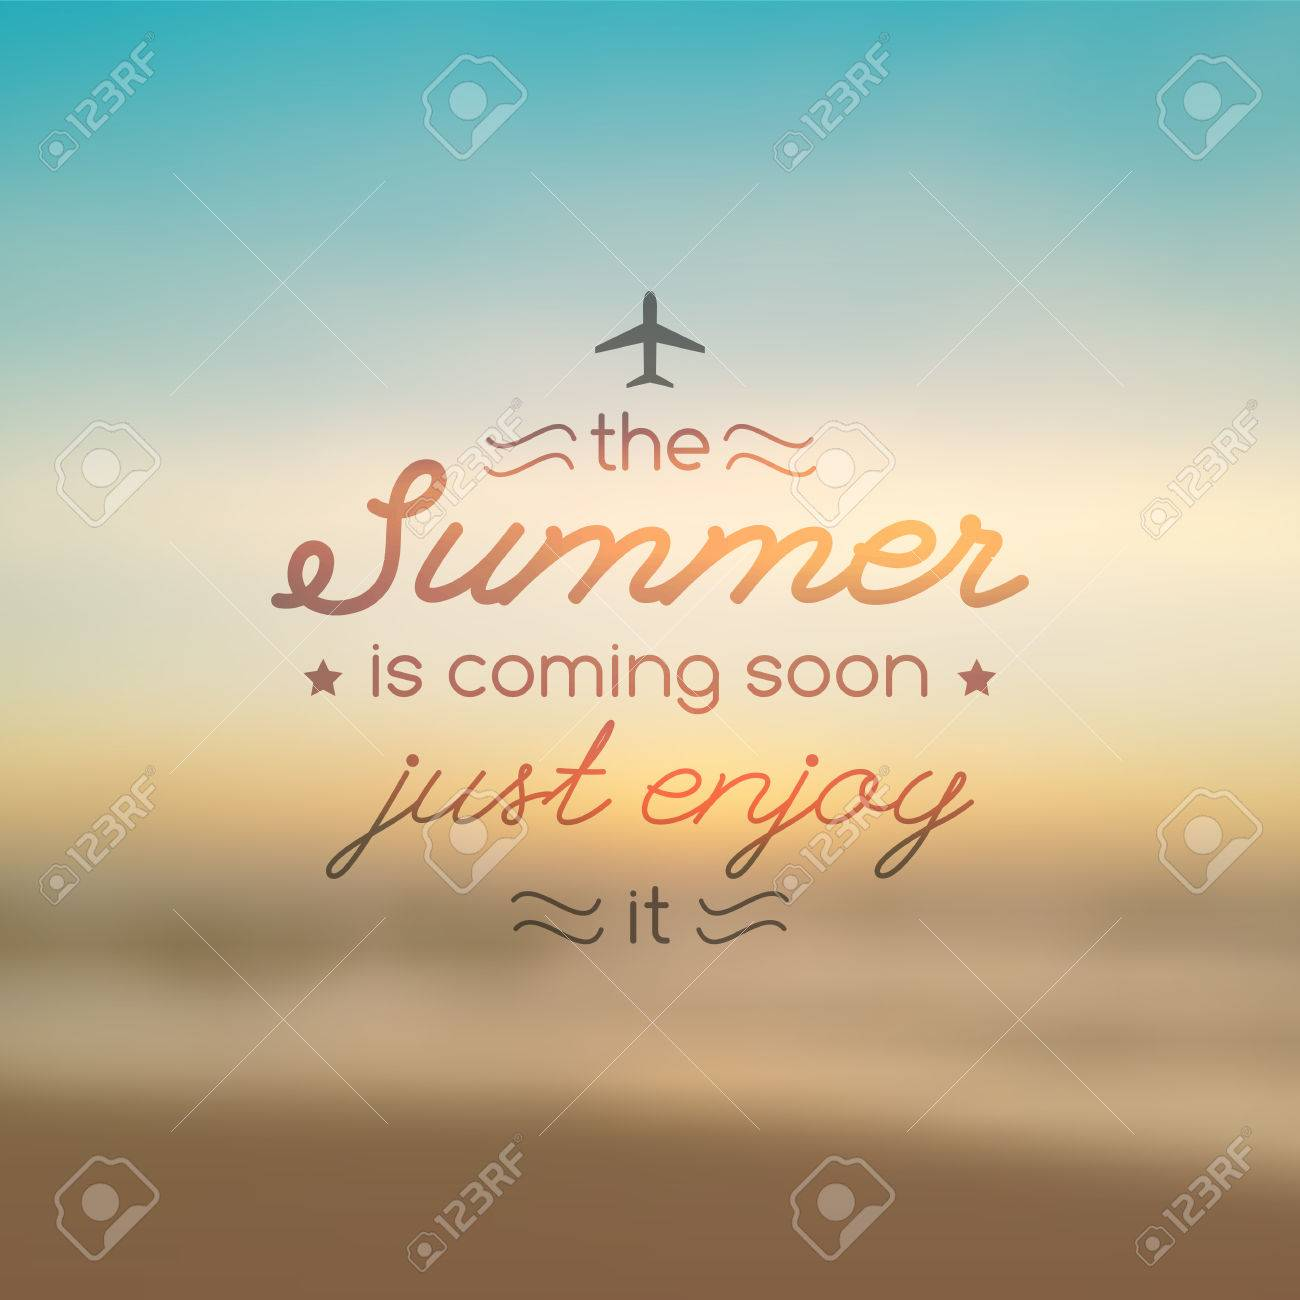 Summer Is Coming Soon, Vector Text On Blurred Background Of Sunrise And Sea,  For